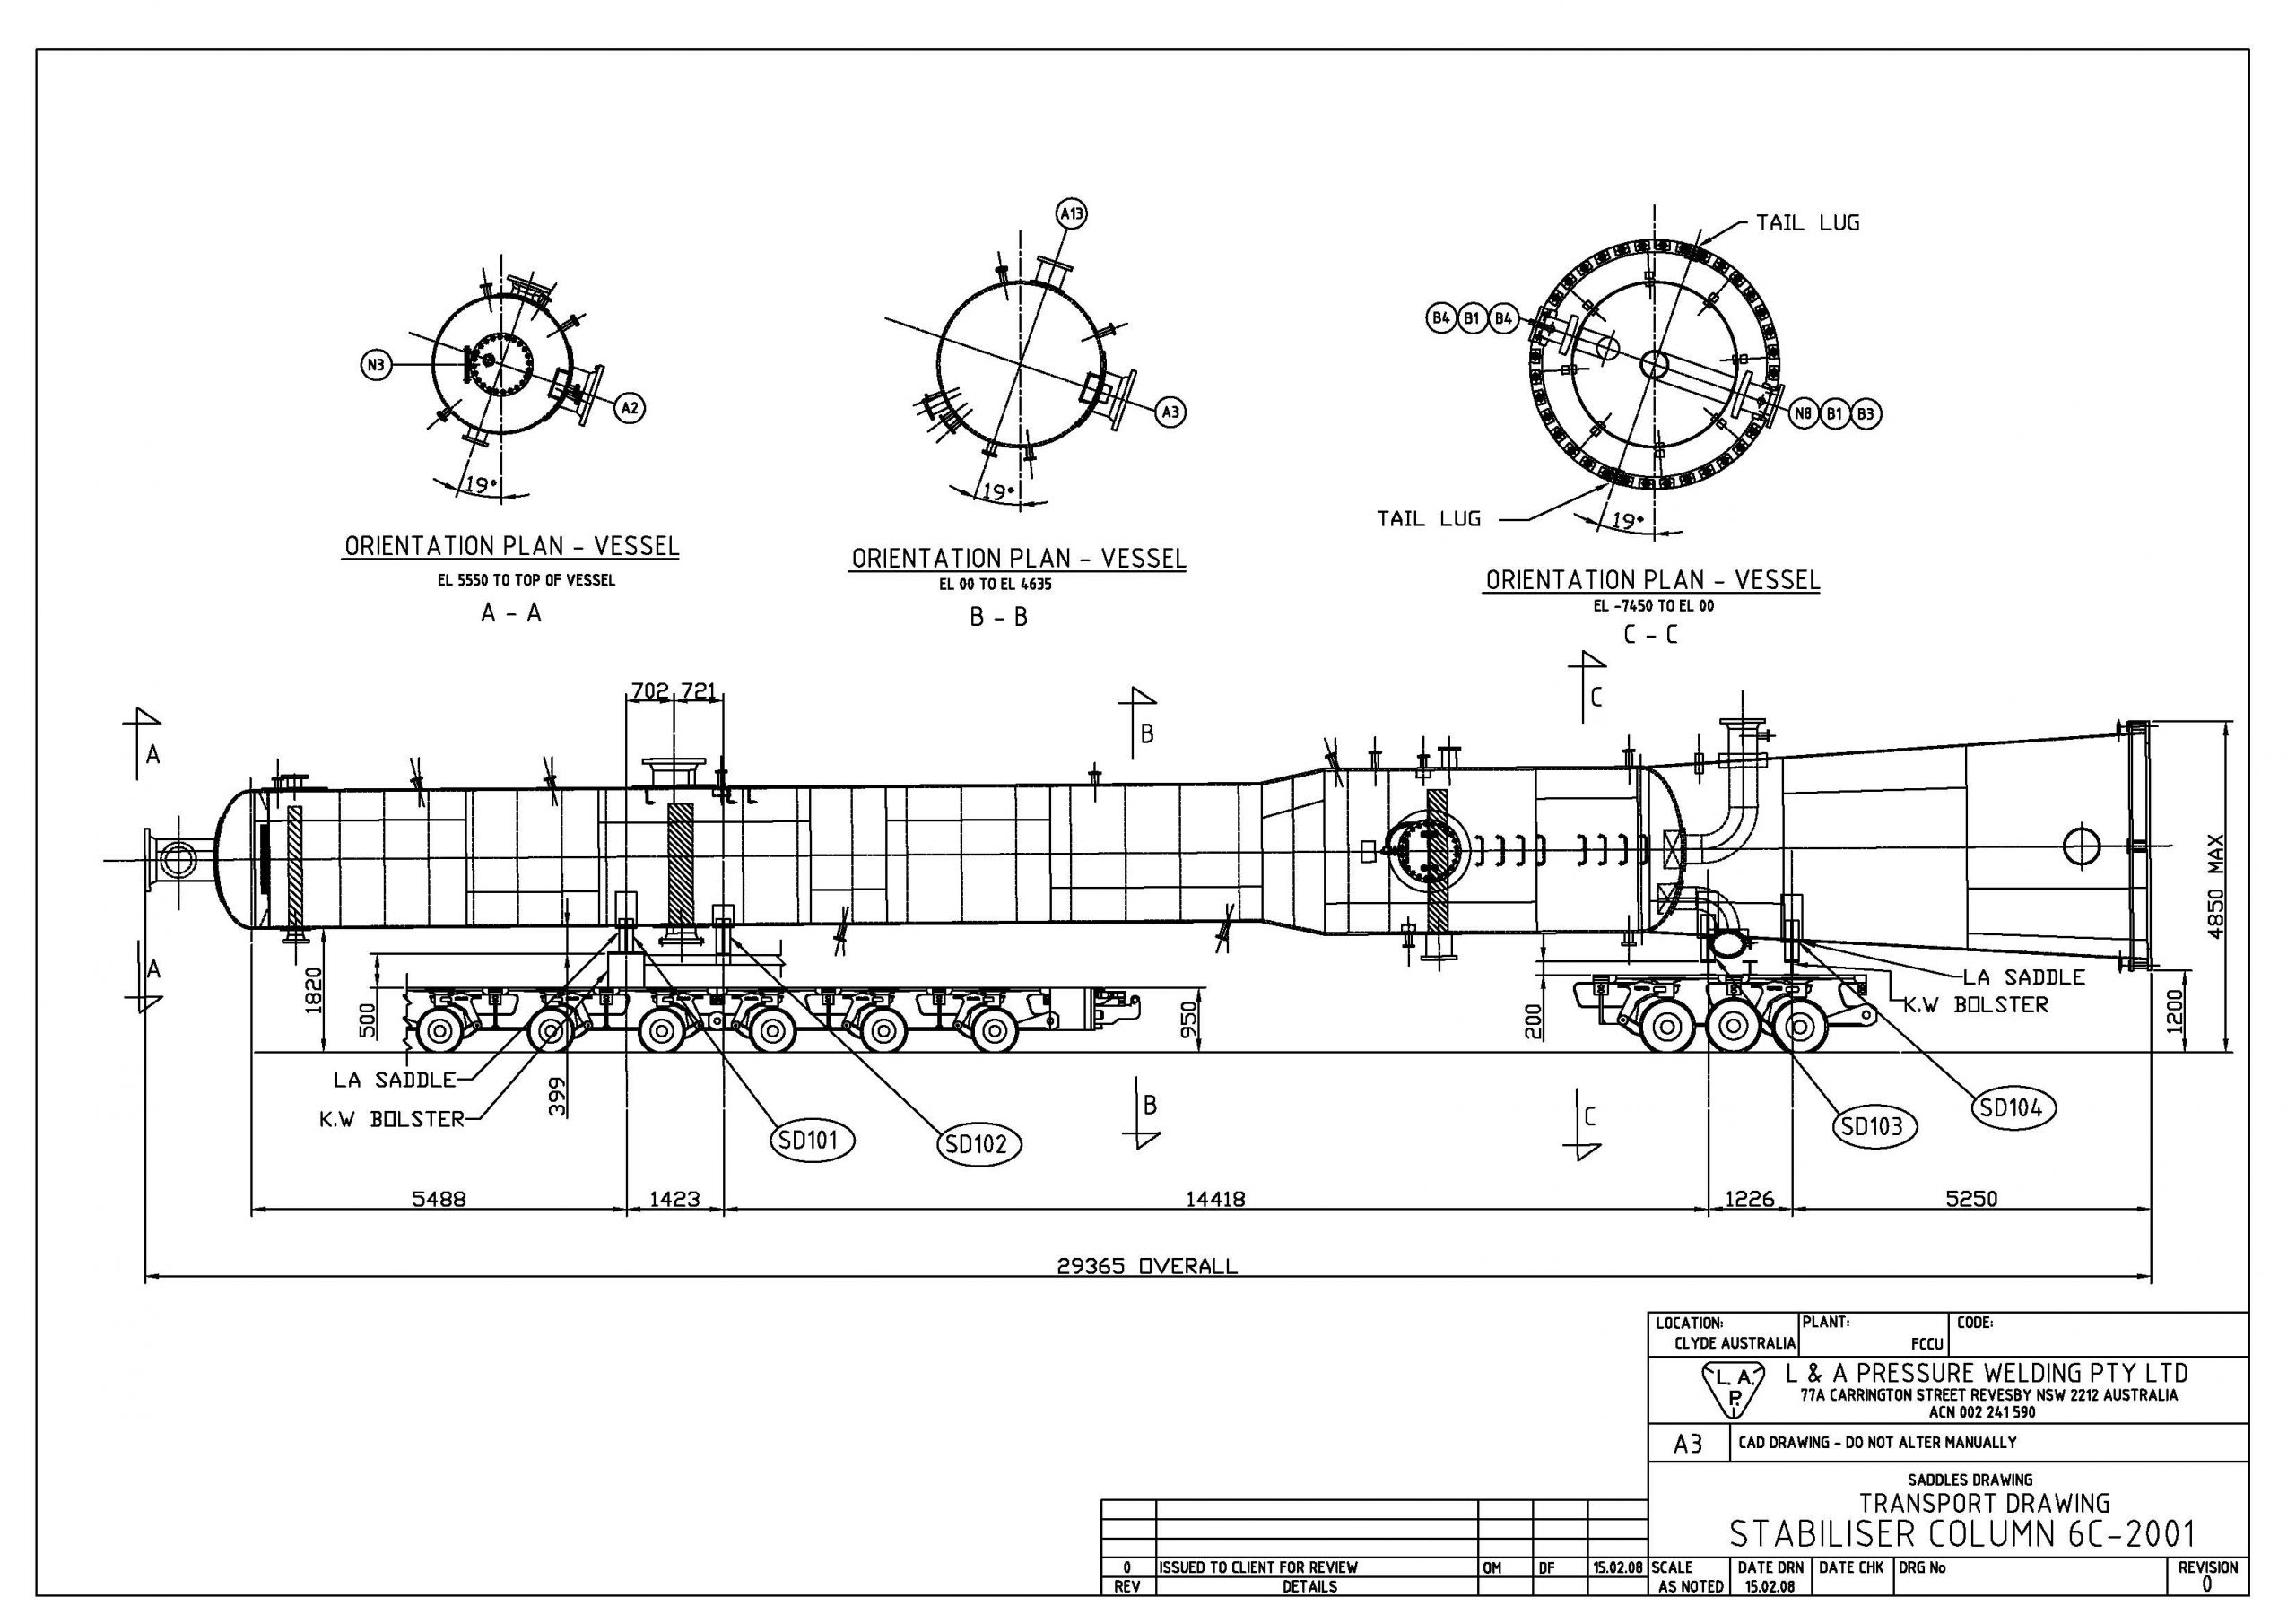 Engineering - CAD, Transport #1 (from PDF)